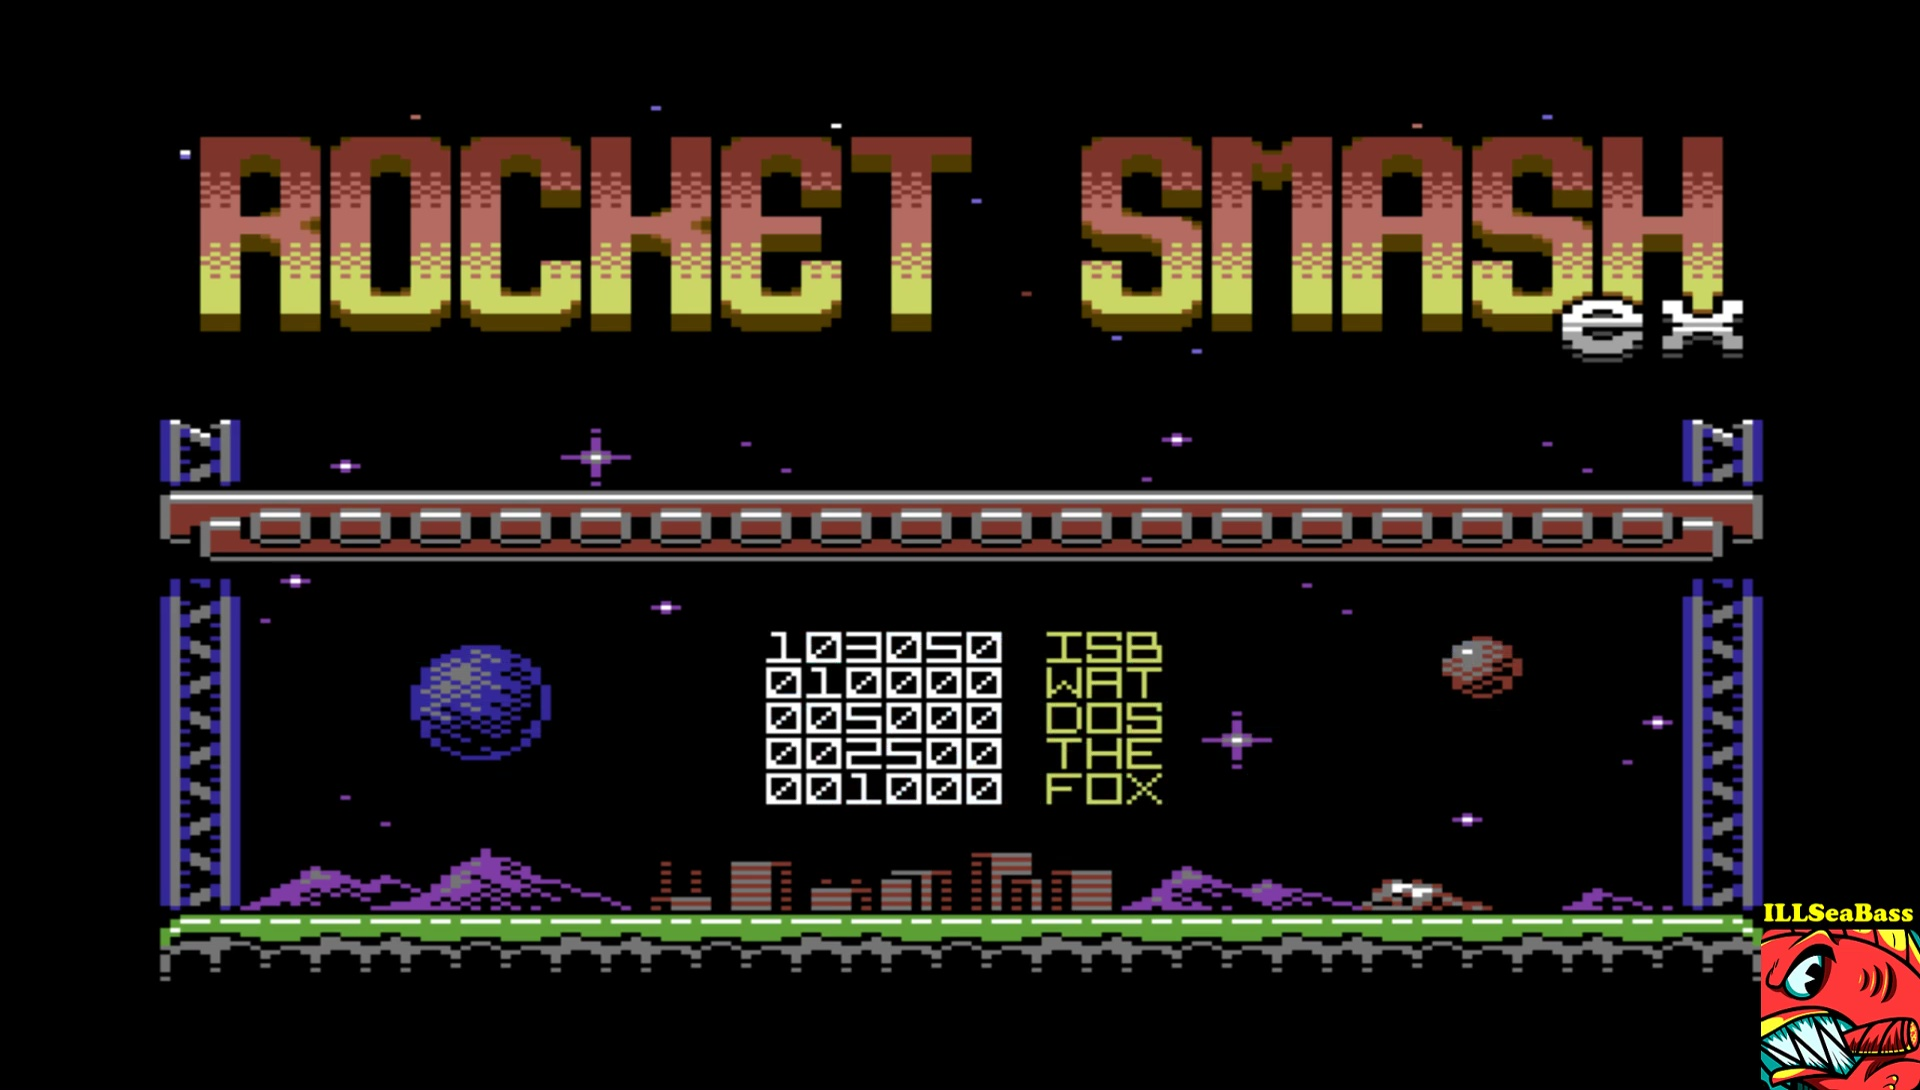 ILLSeaBass: Rocket Smash EX [Story: Easy] (Commodore 64 Emulated) 103,050 points on 2017-04-16 13:19:55